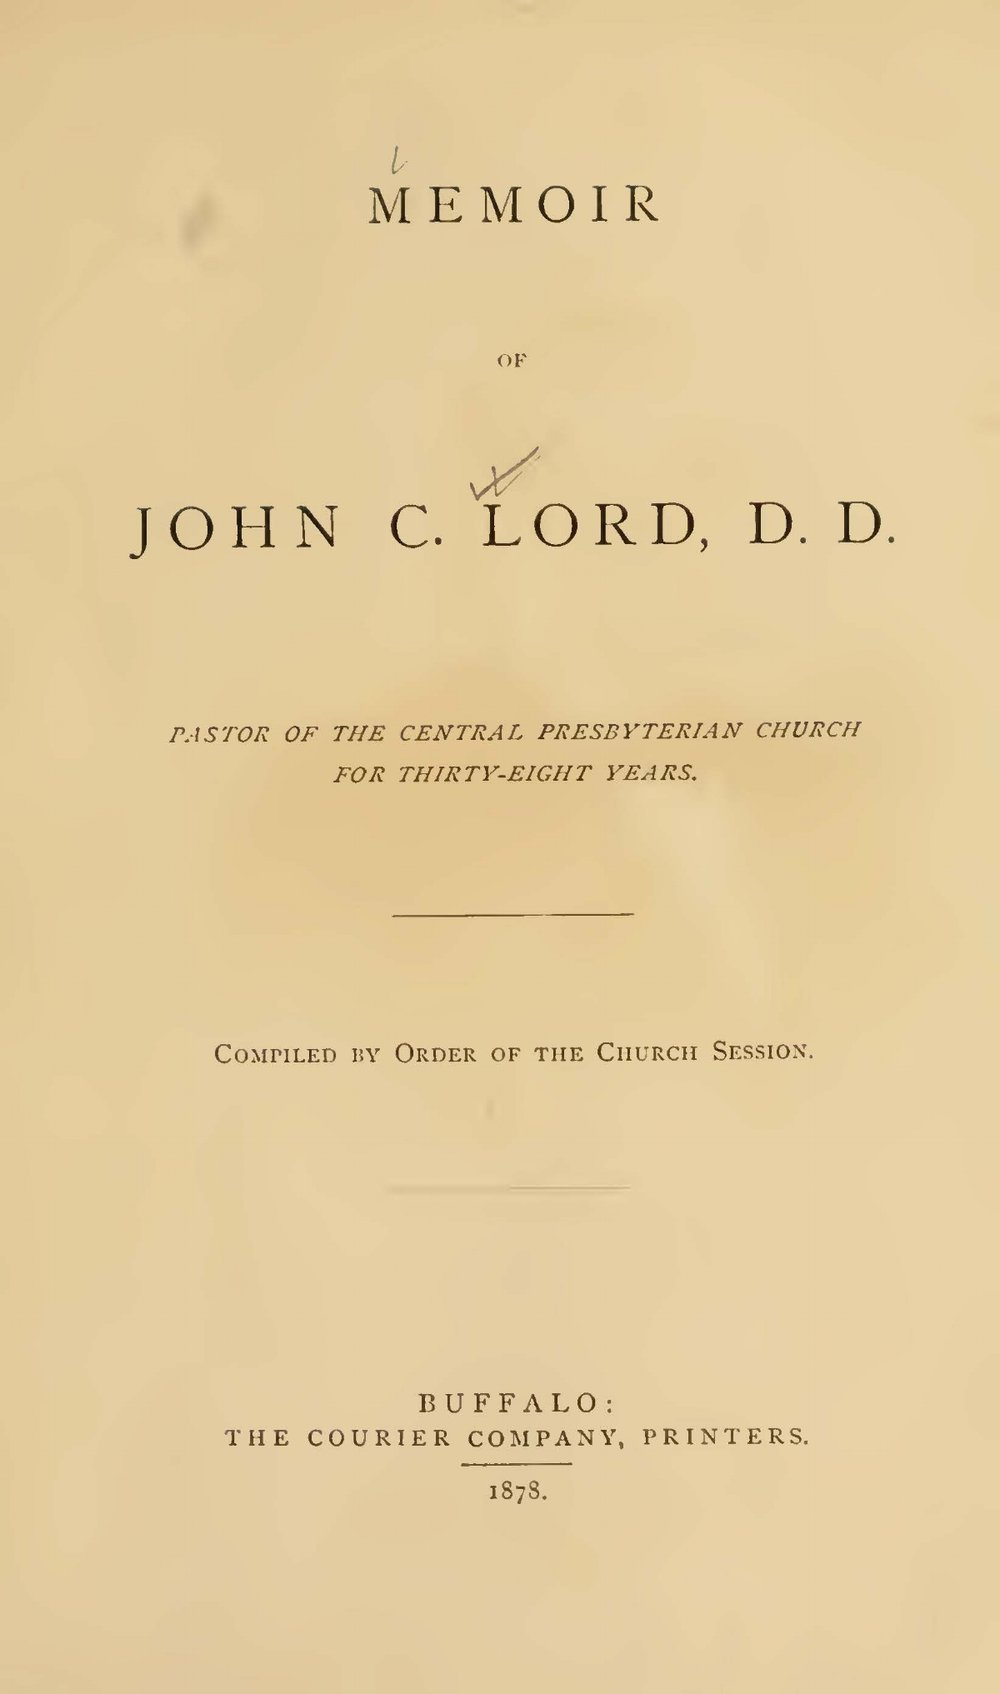 Lord, John Chase, Memoir of John C. Lord, D.D. Title Page.jpg